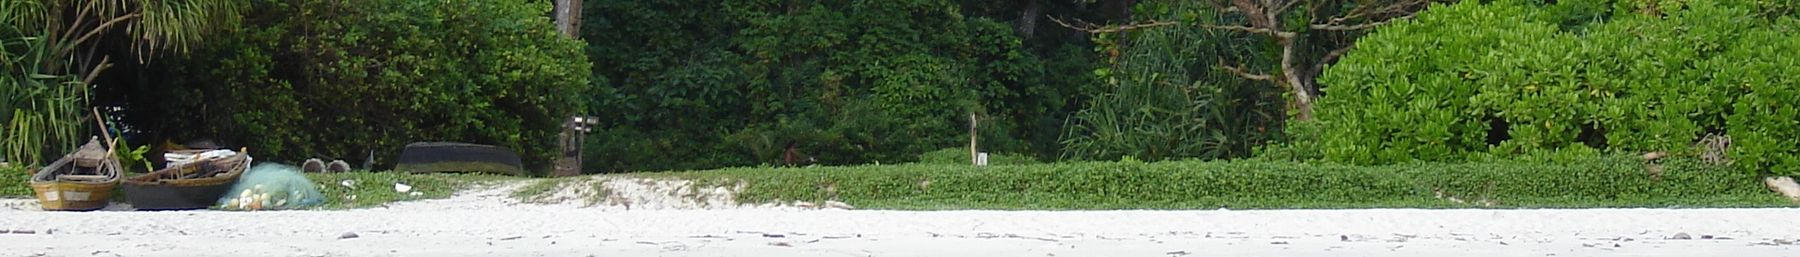 WV banner Havelock island Beach no 7.jpg